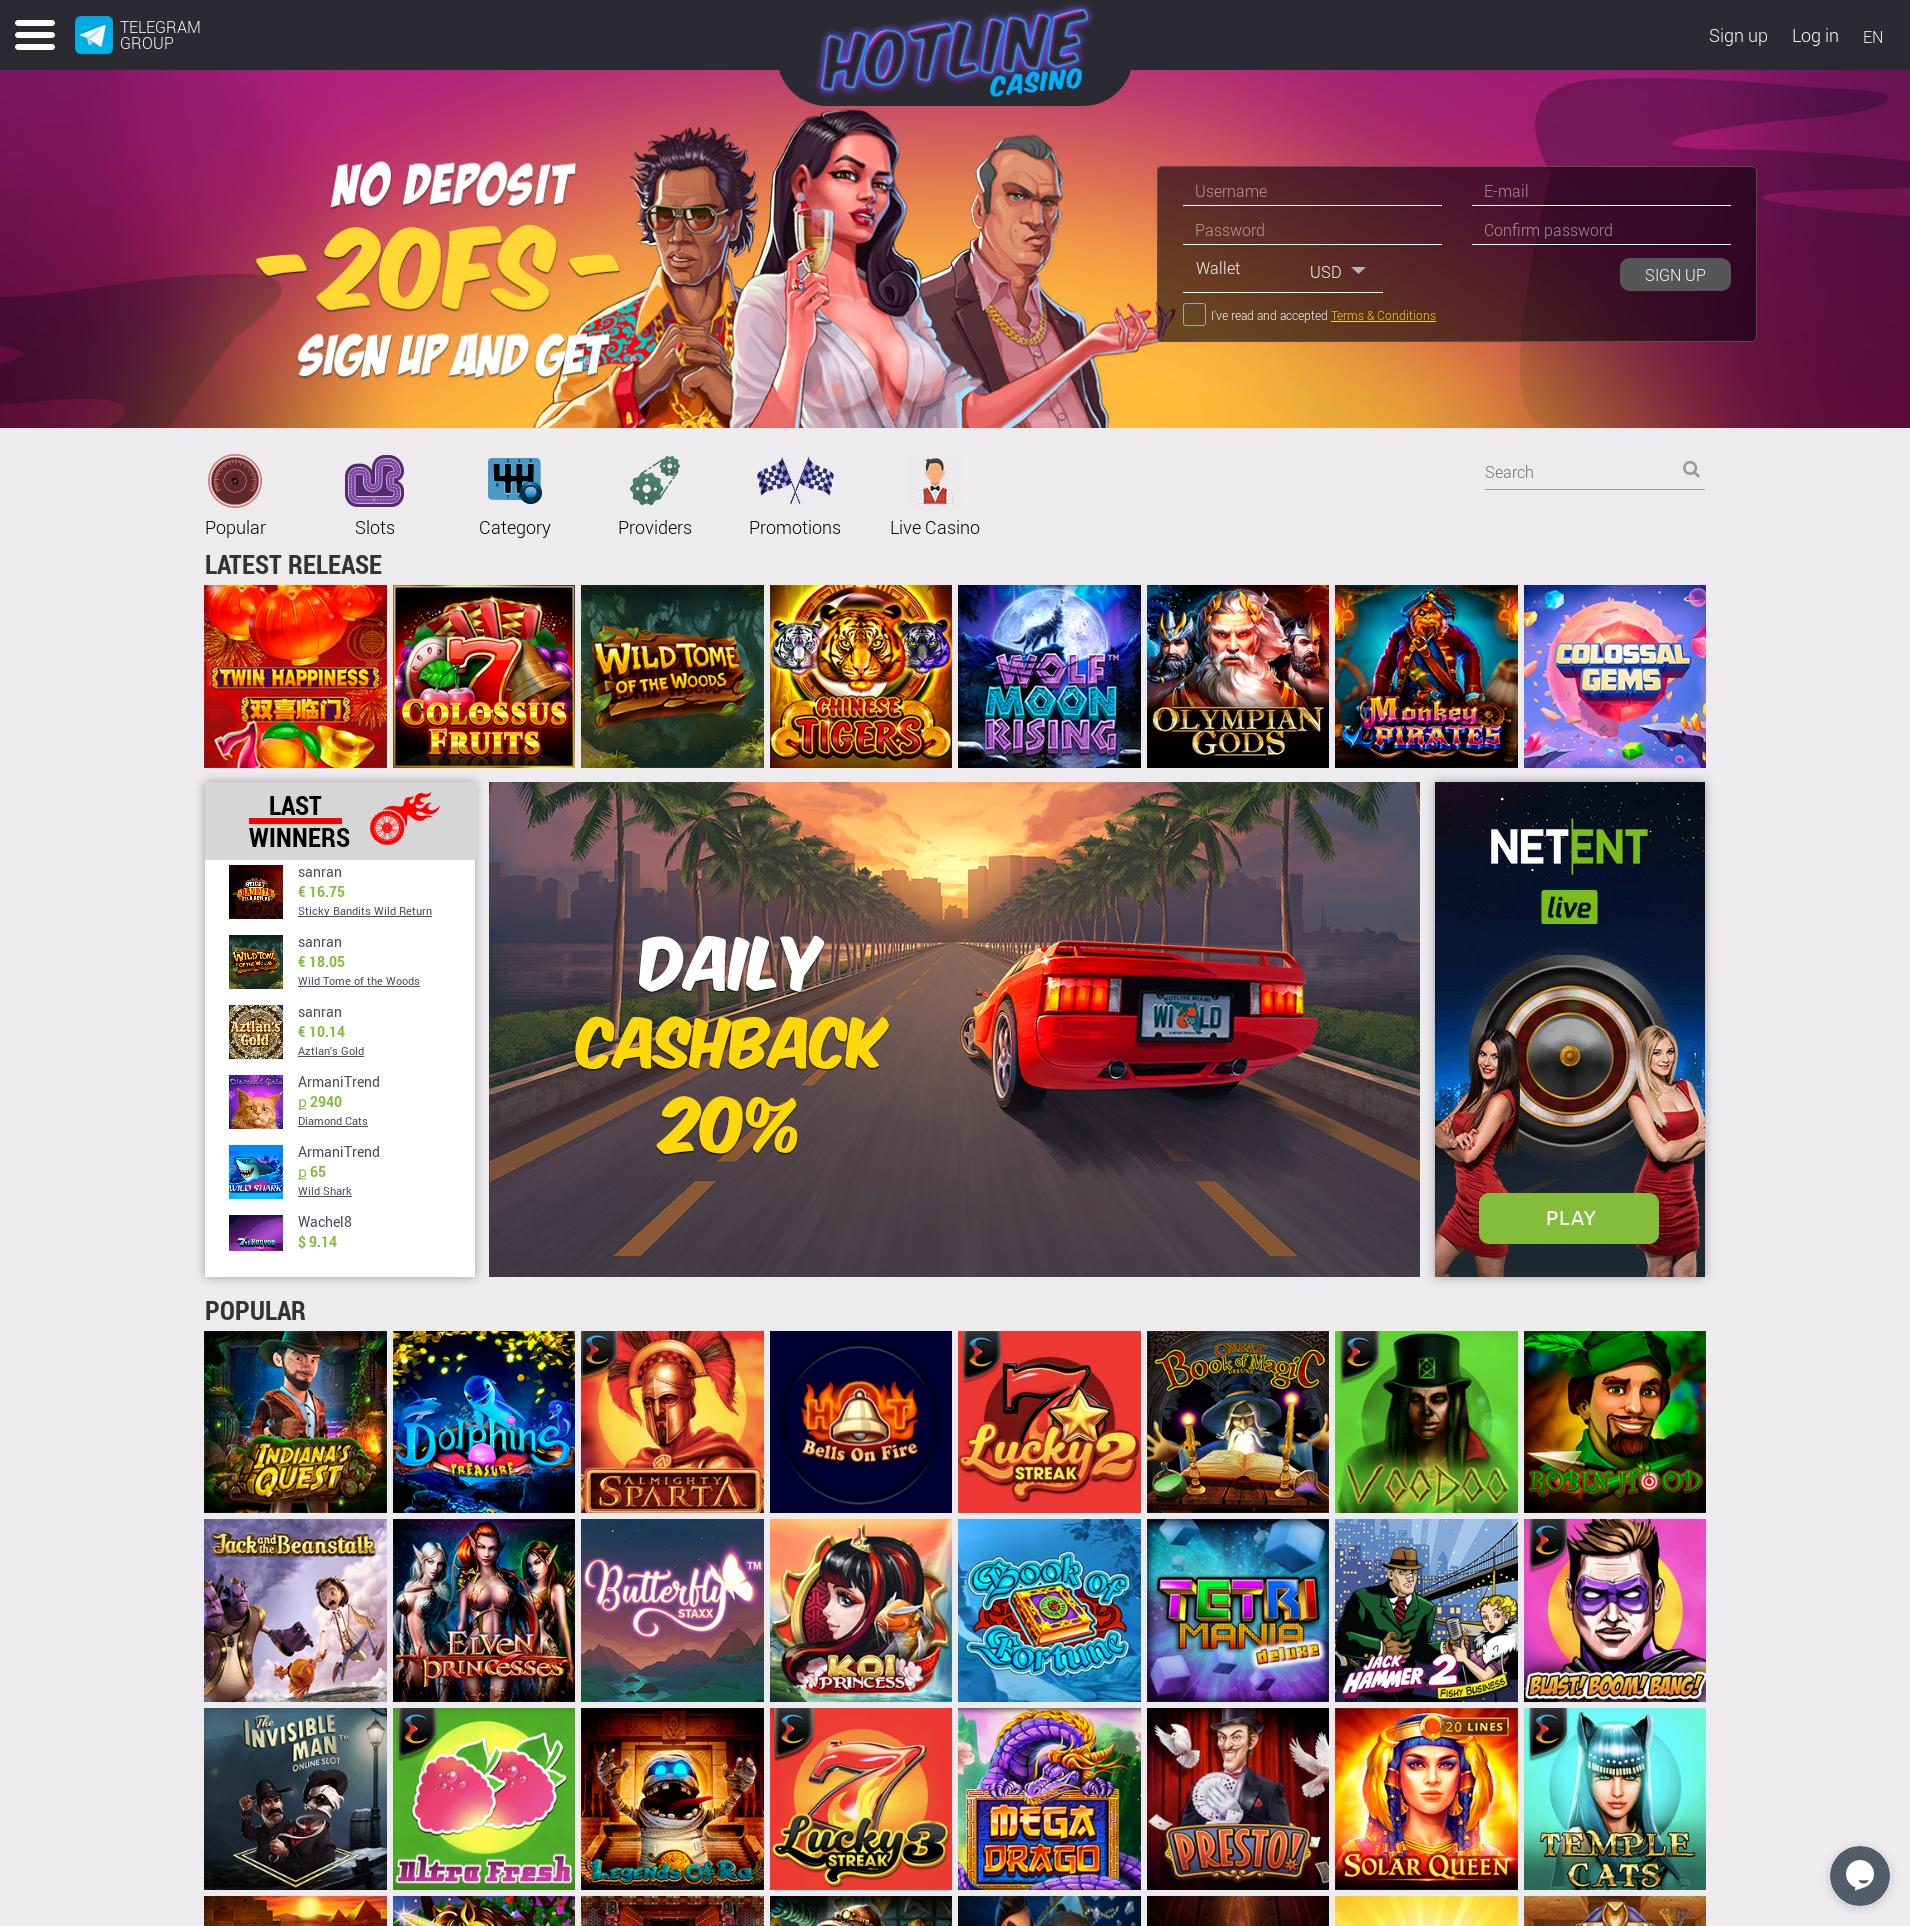 Casino screen Lobby 2019-09-20 for Russian Federation